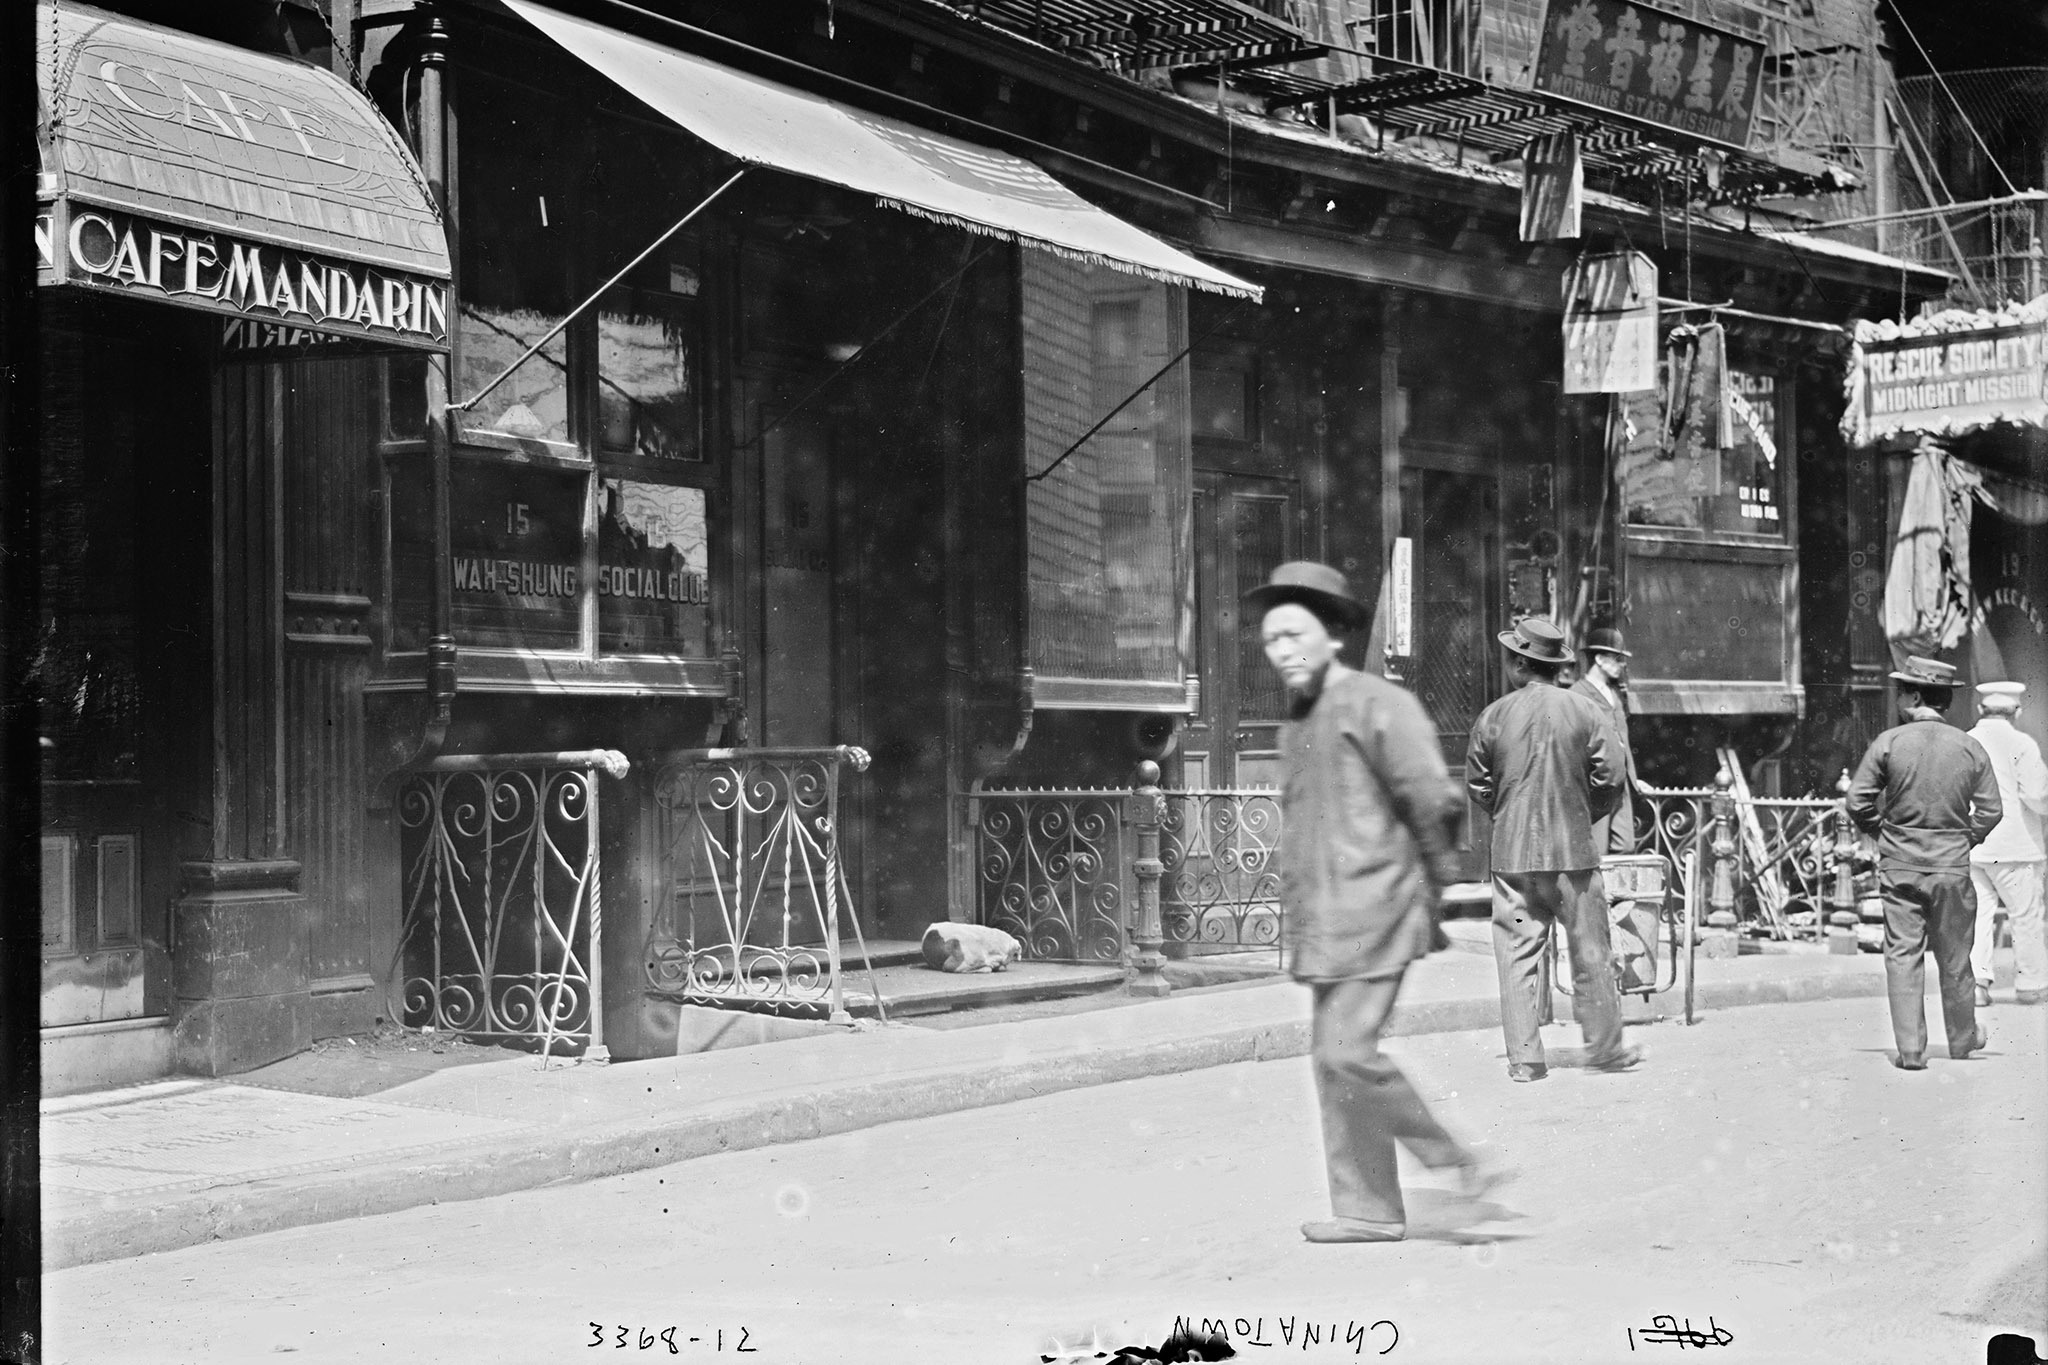 Photograph shows street scene in front of Cafe Mandarin, 11-13 Doyers Street, Chinatown, New York City.